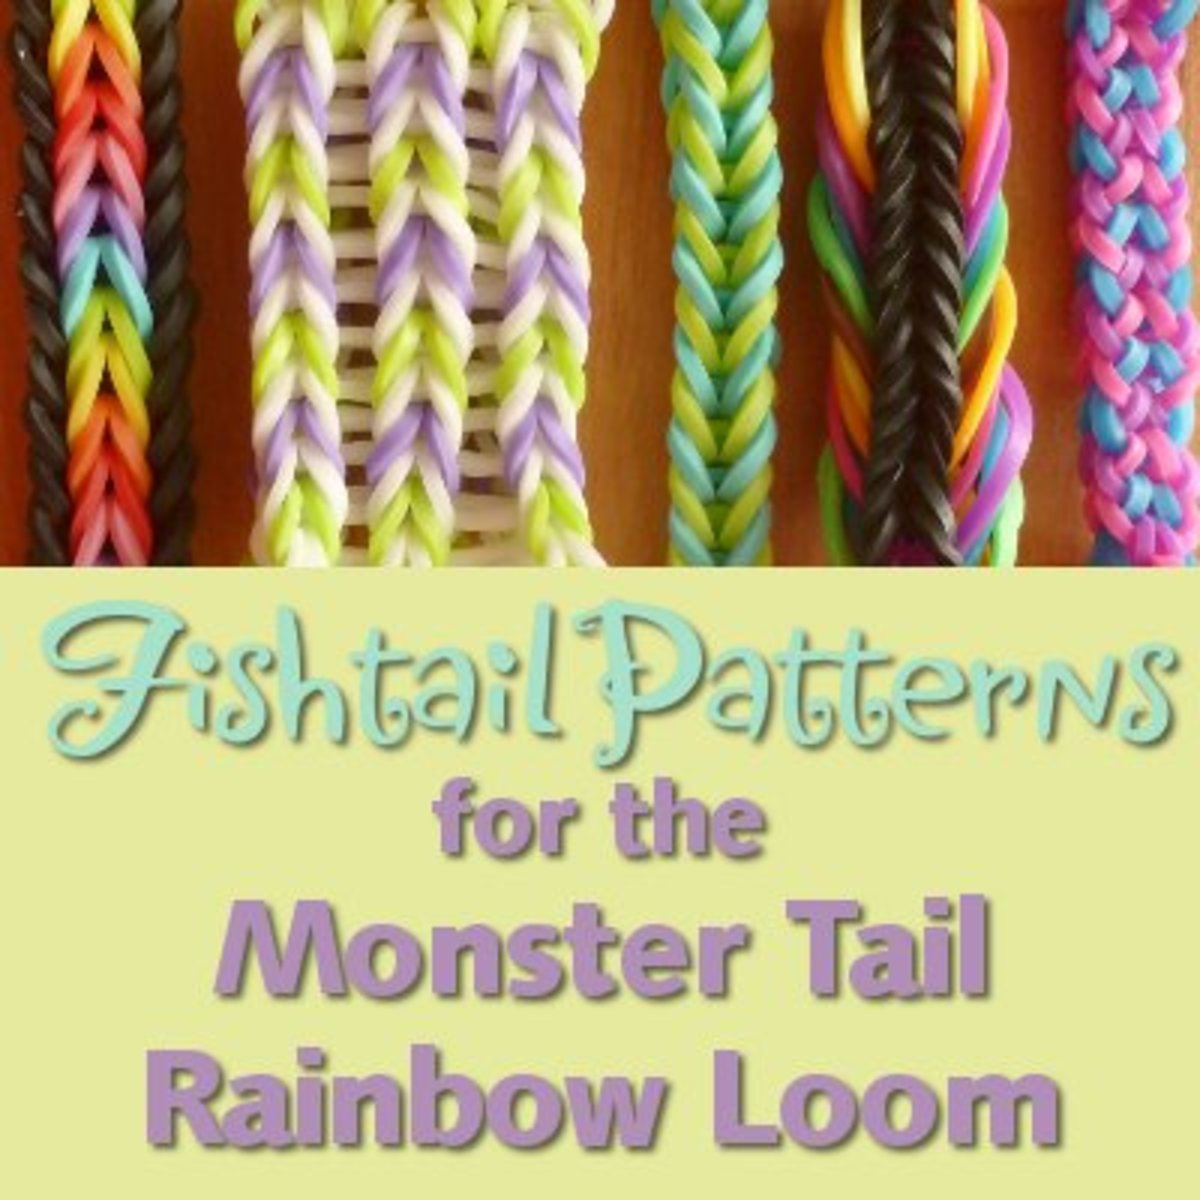 Lots of cool fishtail patterns for the MonsterTail mini Rainbow loom